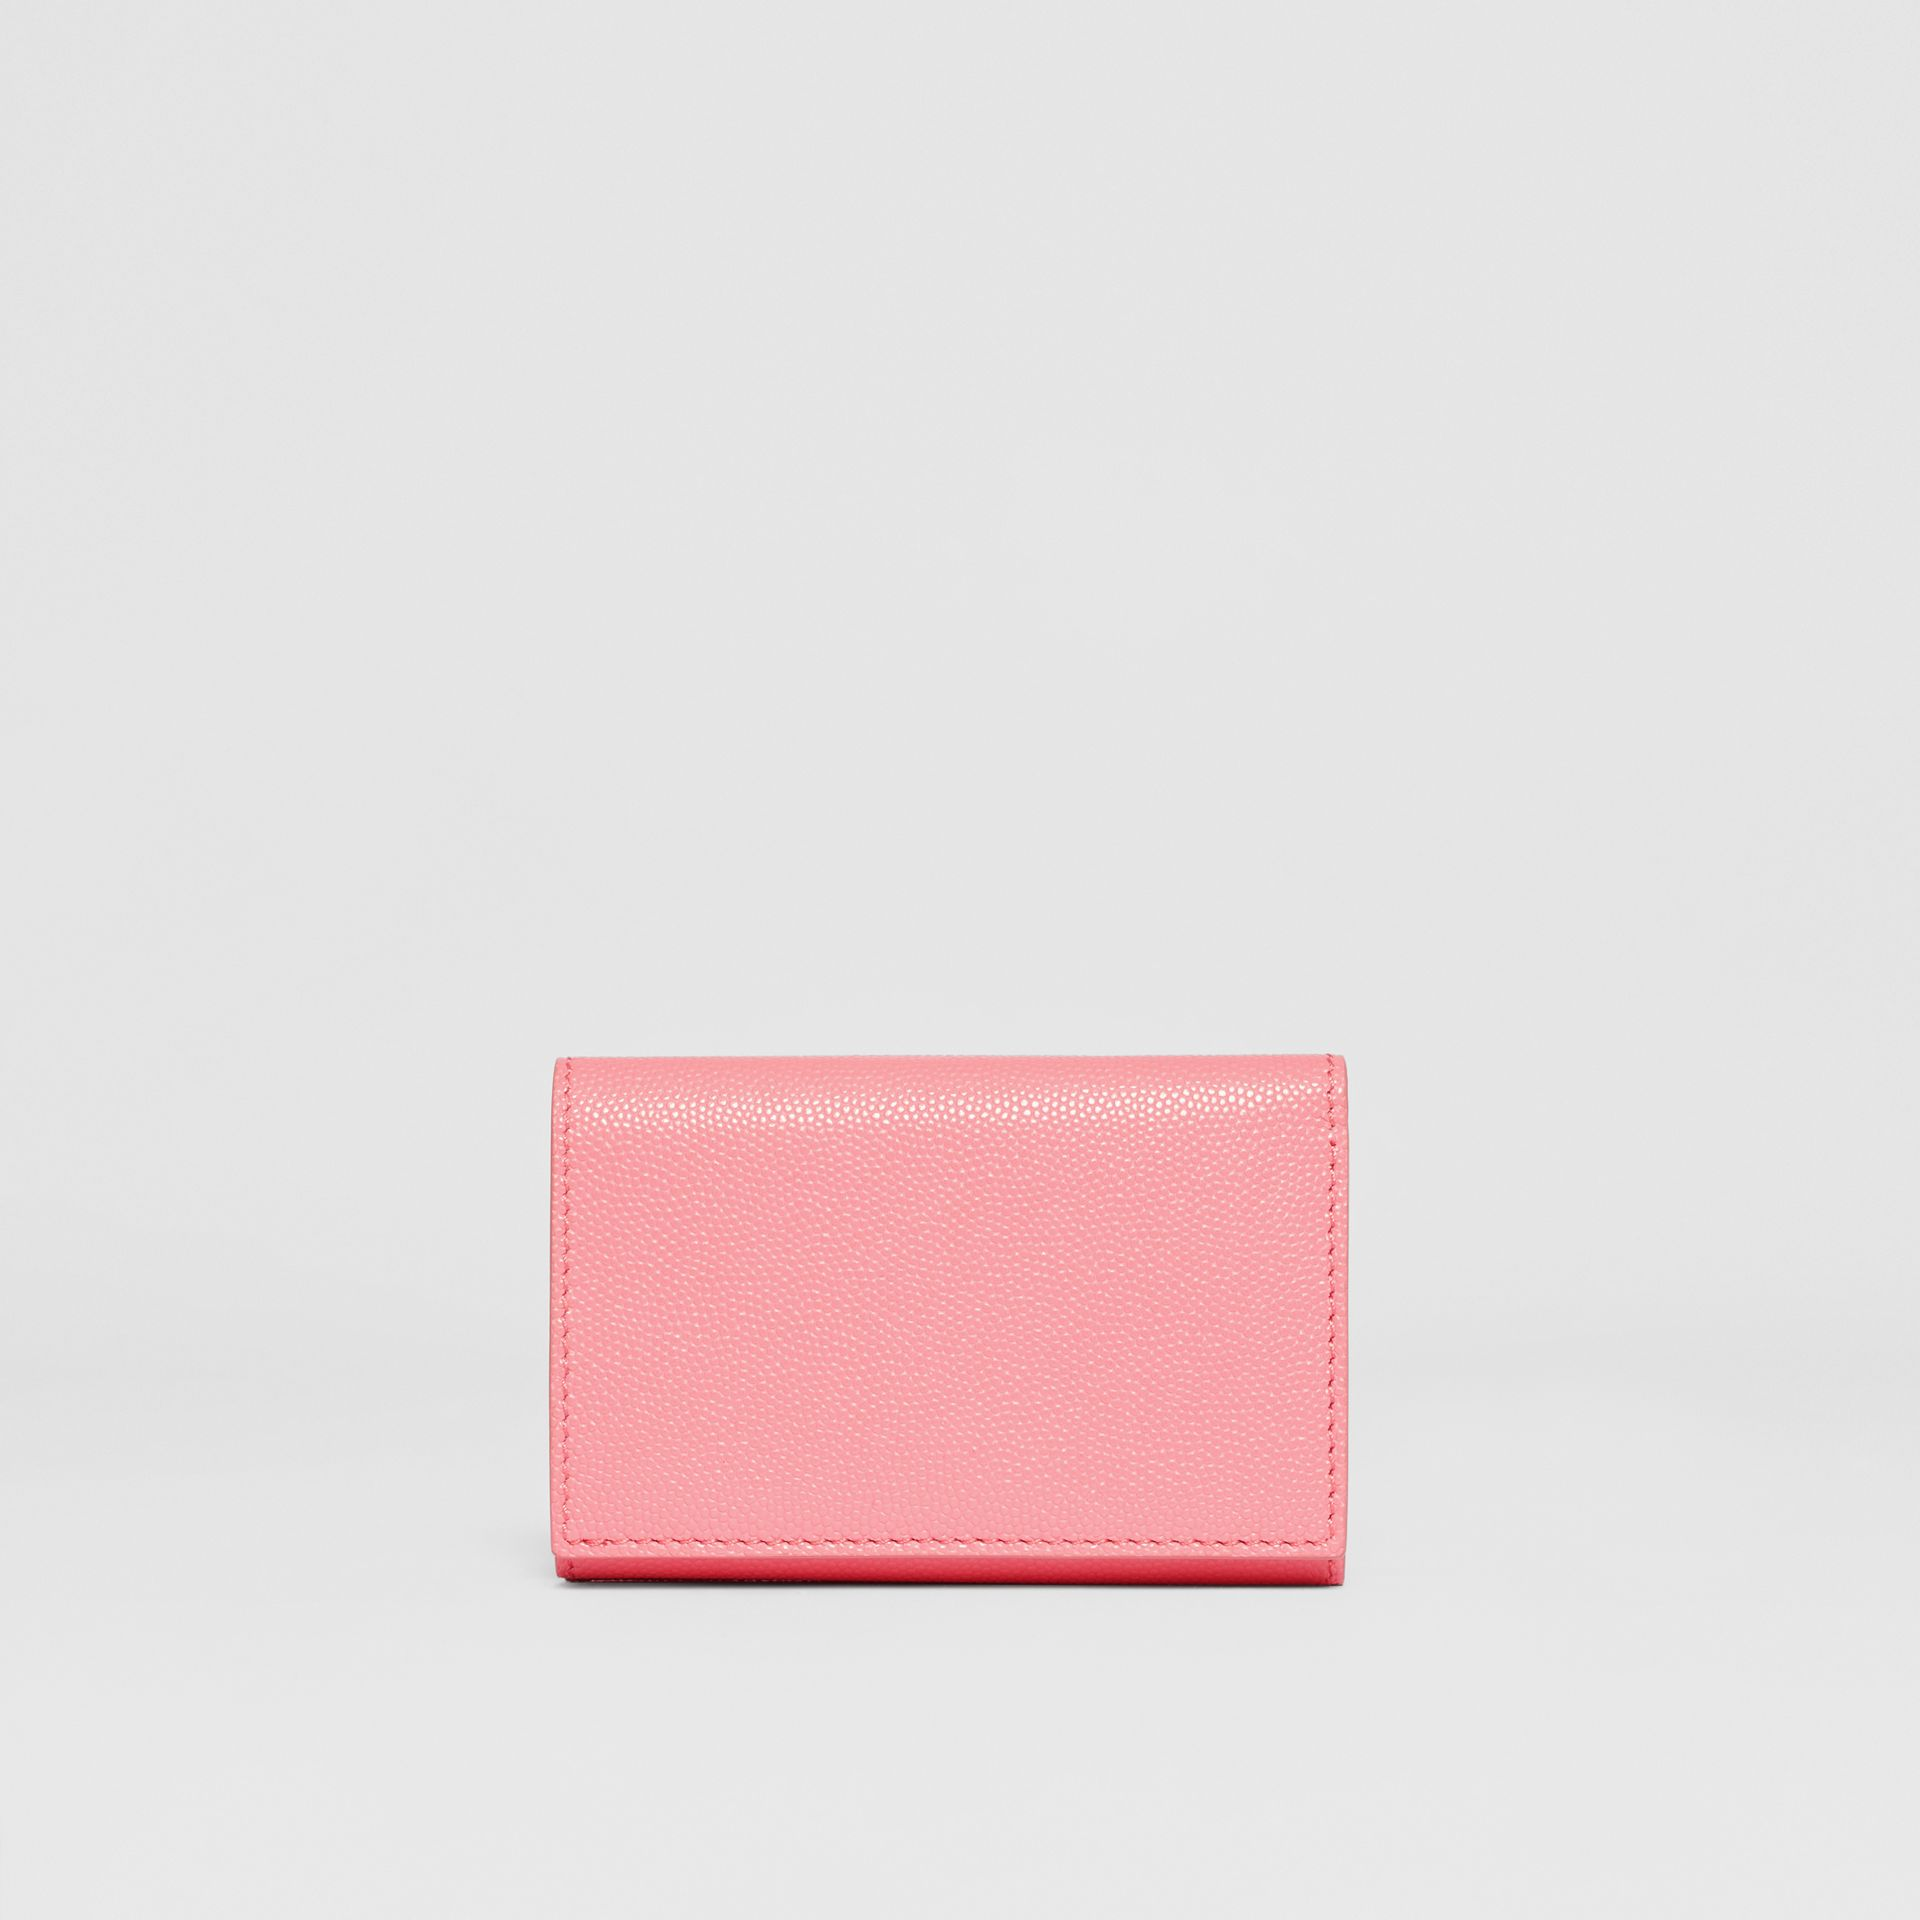 Small Grainy Leather Folding Wallet in Candy Floss/palladio - Women | Burberry - gallery image 4